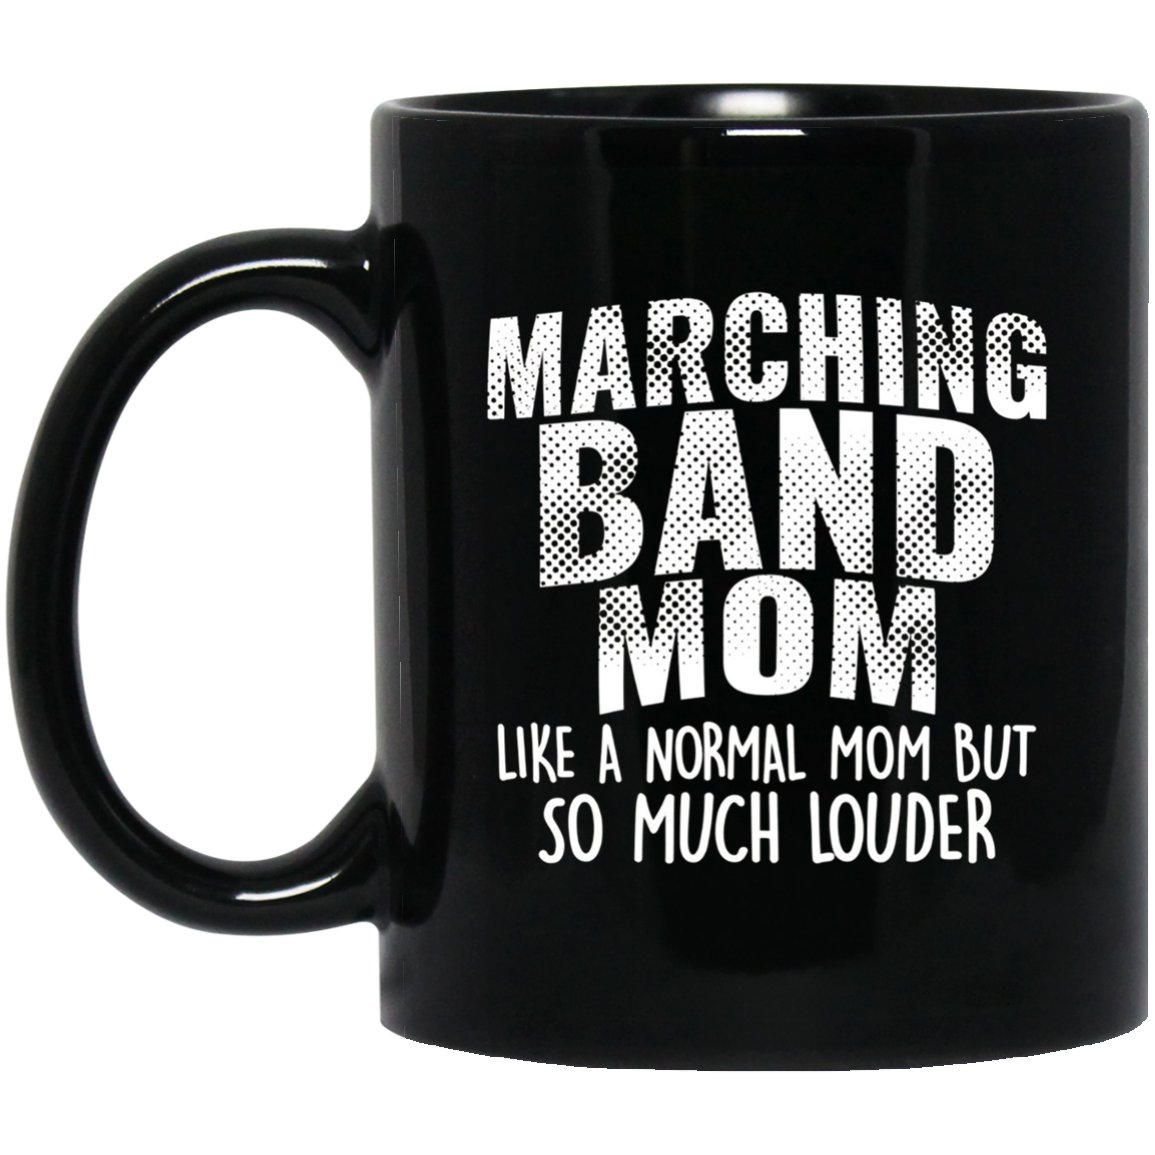 Funny Marching Band Mom Gift Like Normal But Louder Black  Mug Black Ceramic 11oz Coffee Tea Cup